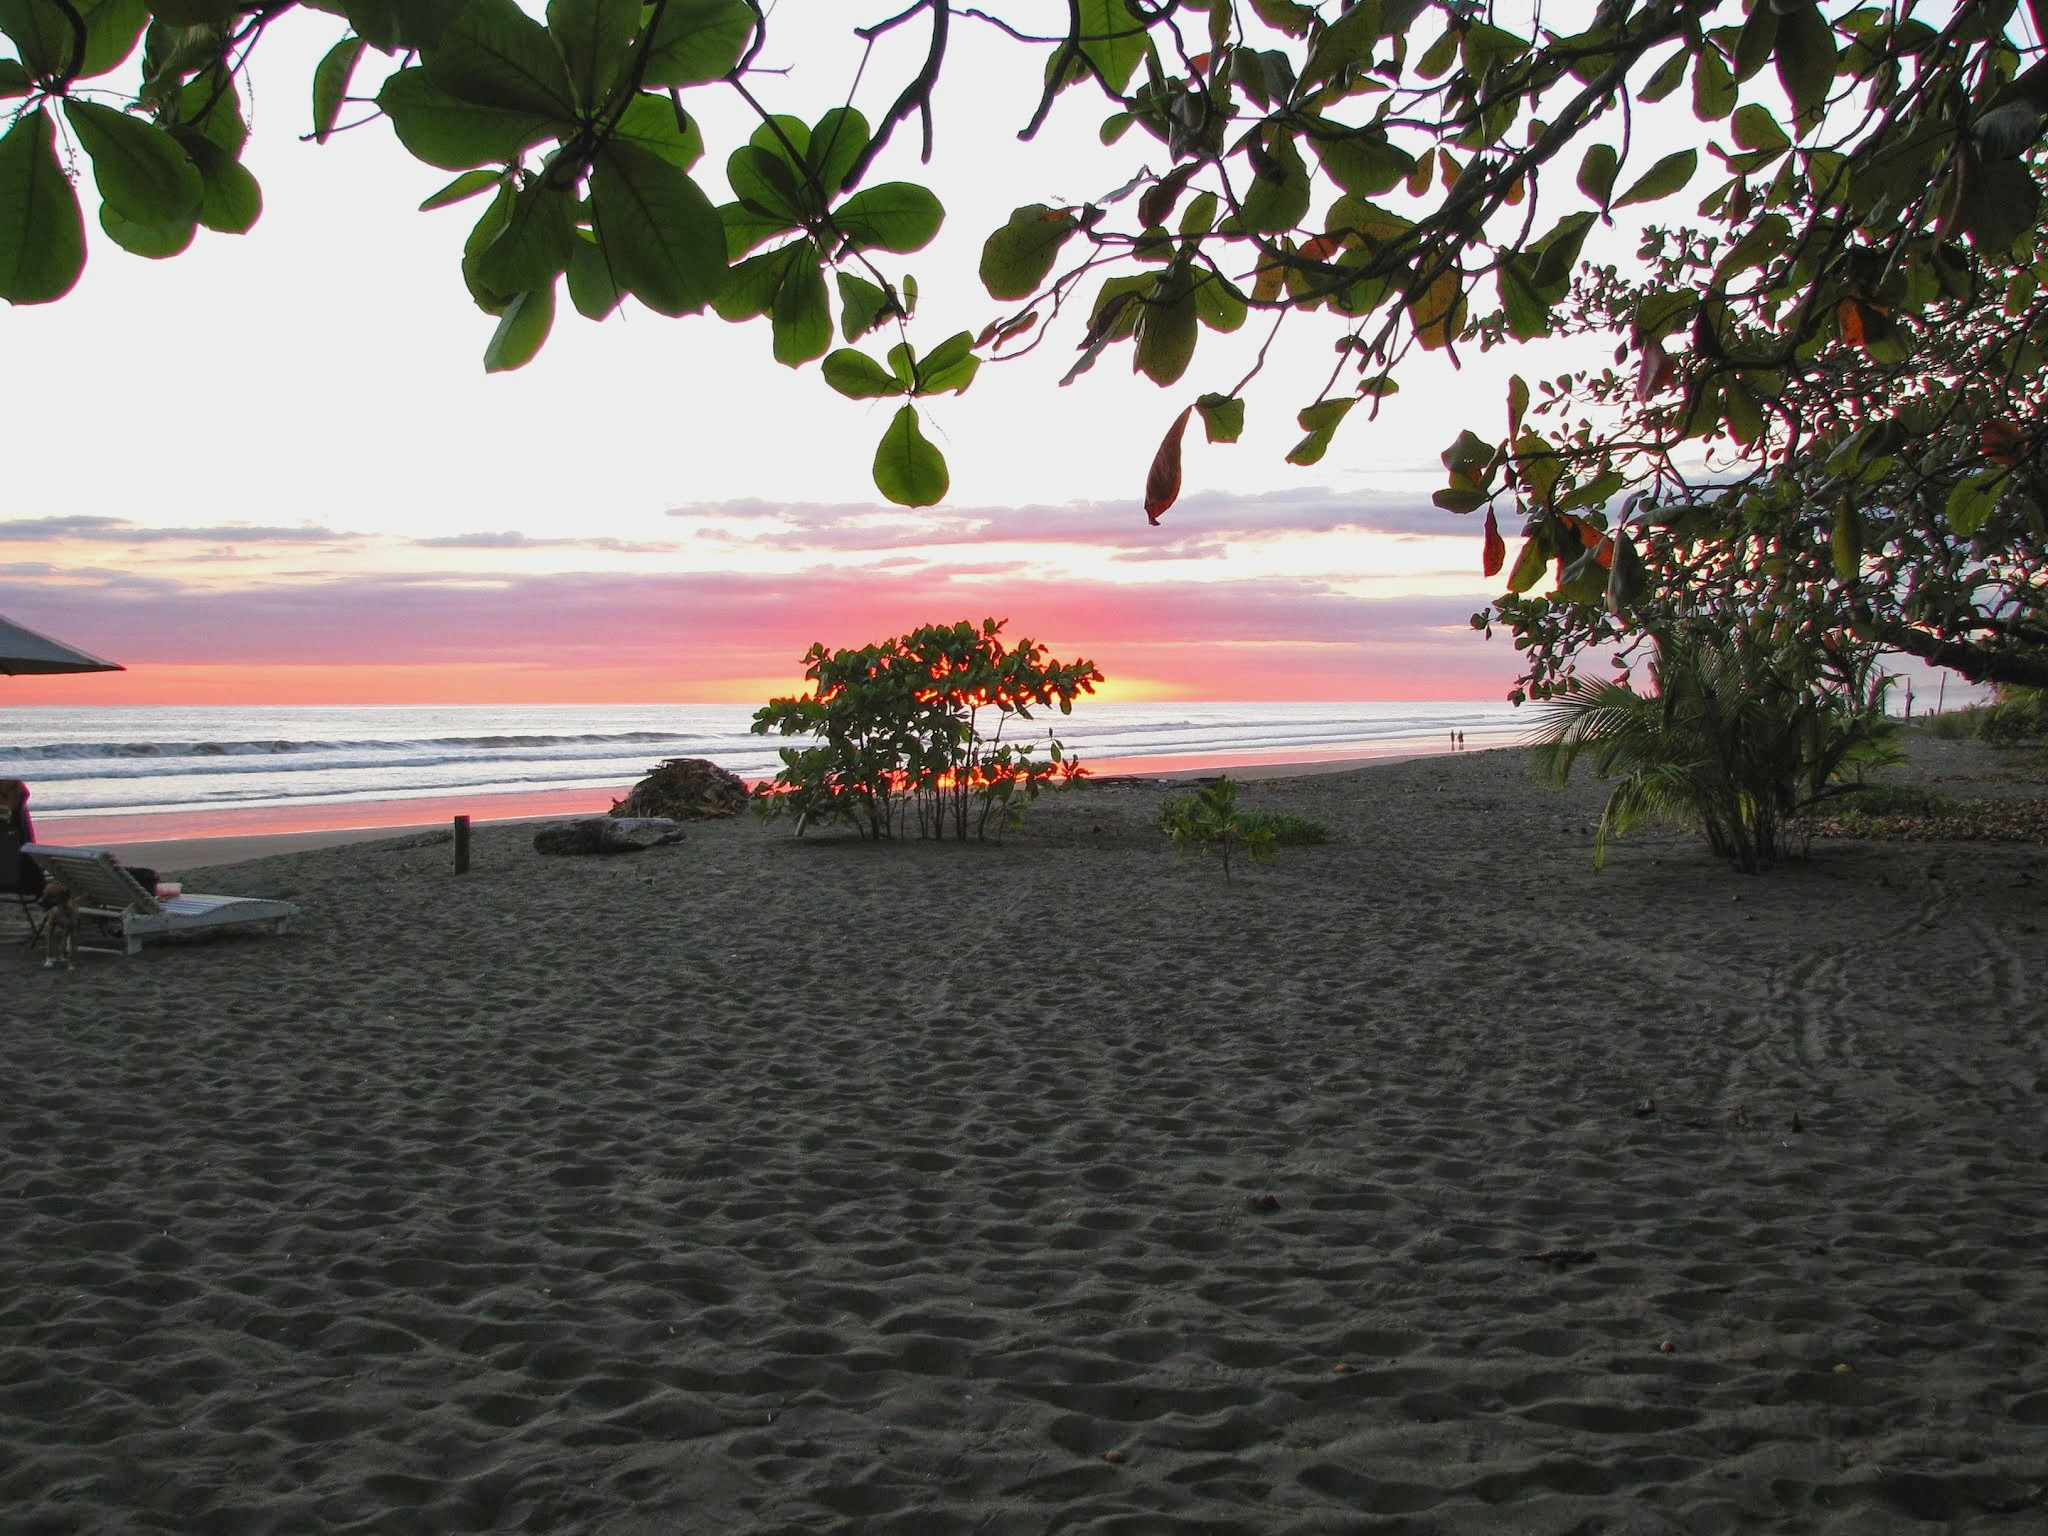 Sunset in Matapalo